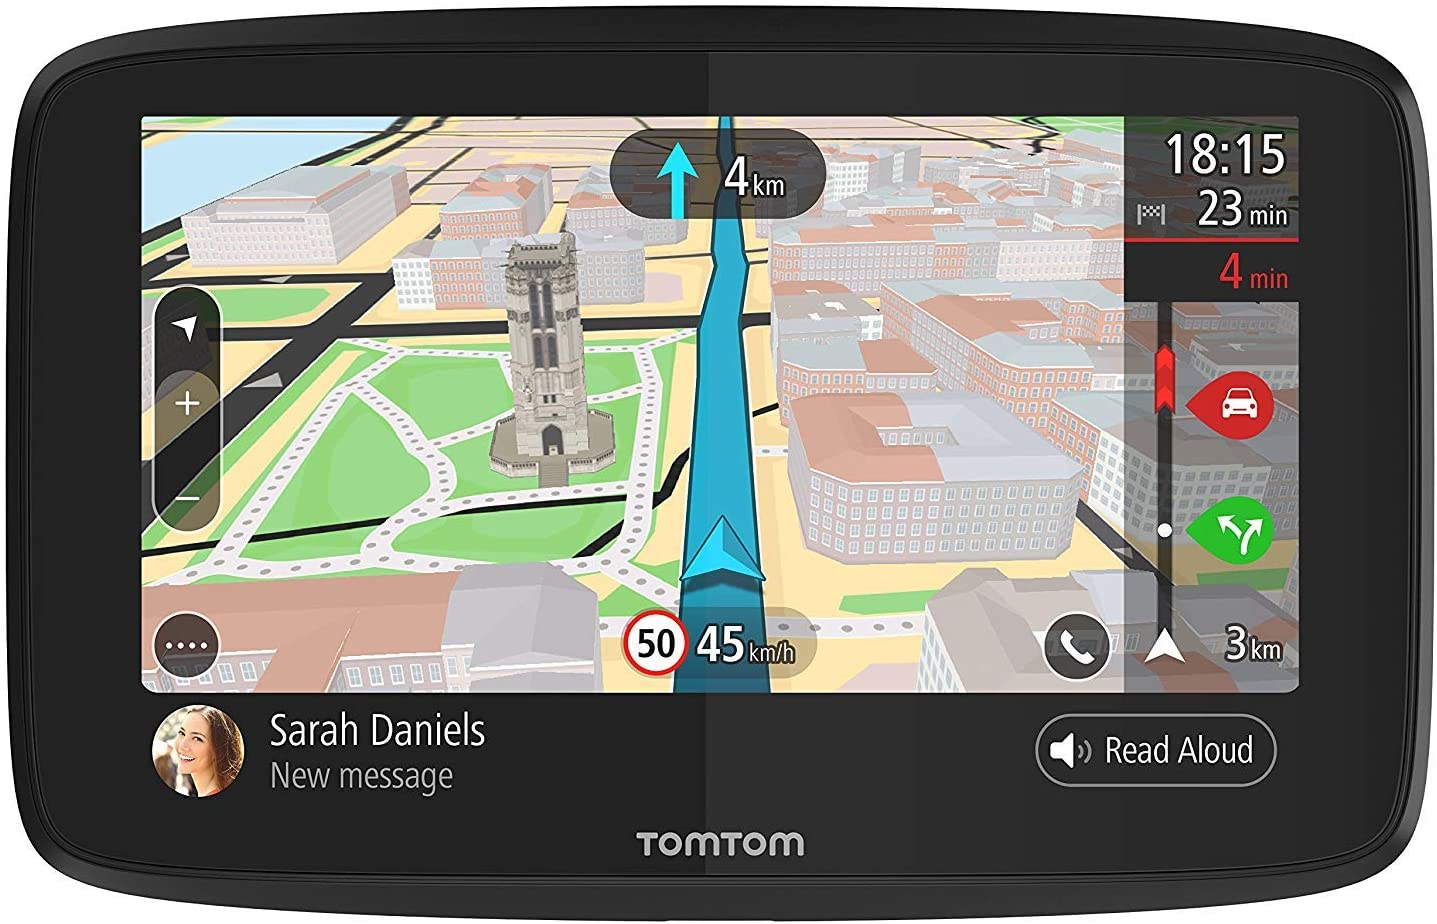 Voice Control and Hands-free Calling Smartphone Messaging TomTom Go 620 6 Inch GPS Navigation Device with Real Time Traffic World Maps Wi-Fi-Connectivity